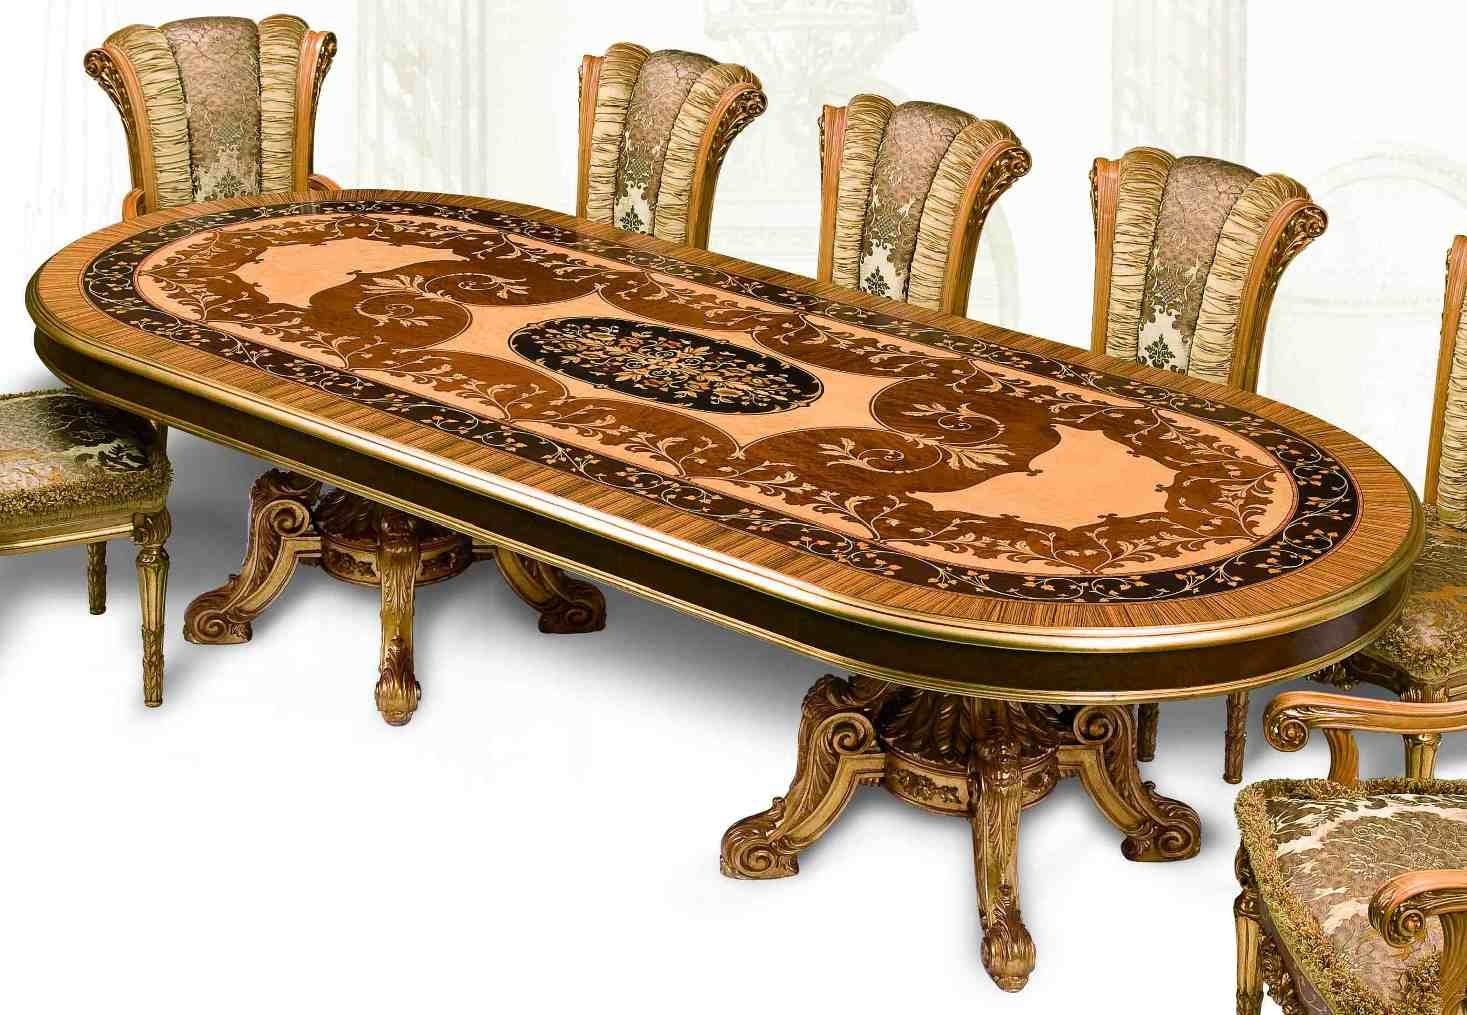 11 luxury dining furniture exquisite empire style dining set for World s most expensive furniture